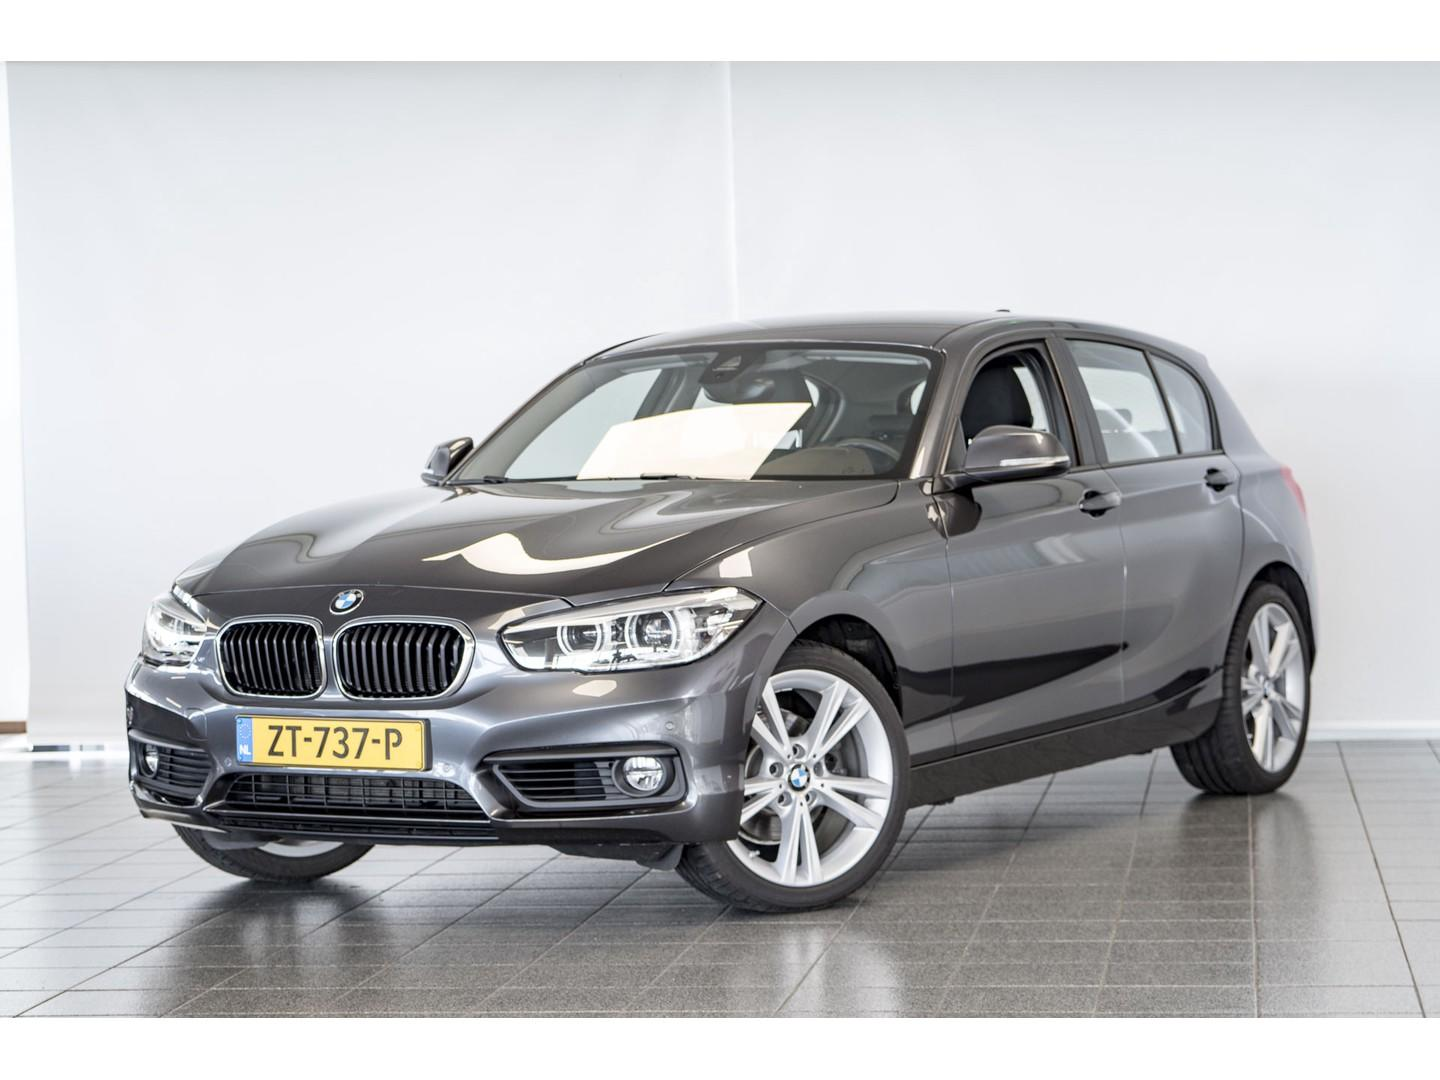 "Bmw 1 serie 120i executive 18""lm / pdc v-a"